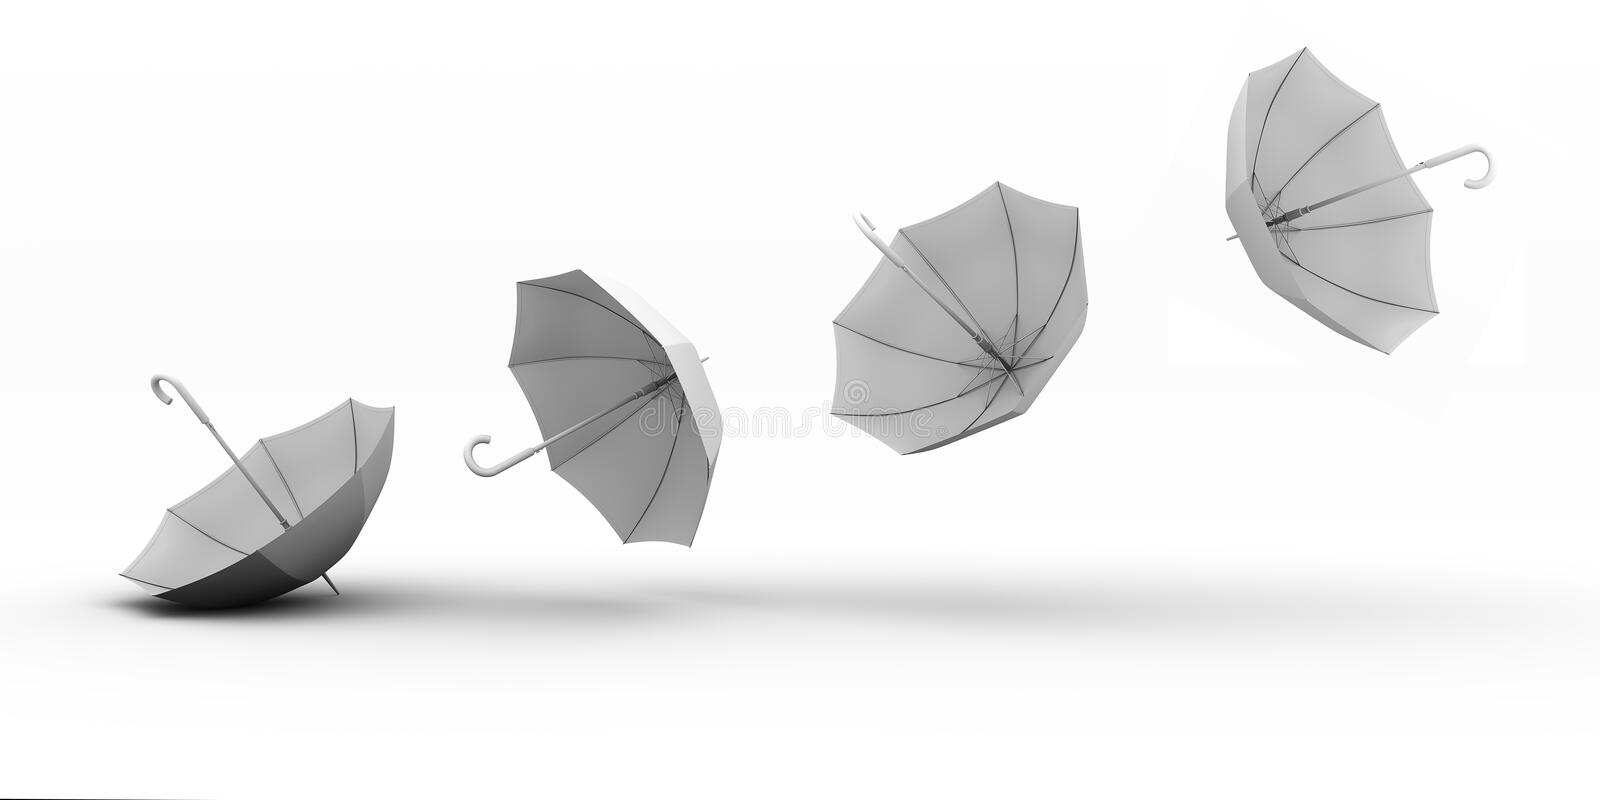 Flying umbrellas on a white background stock illustration